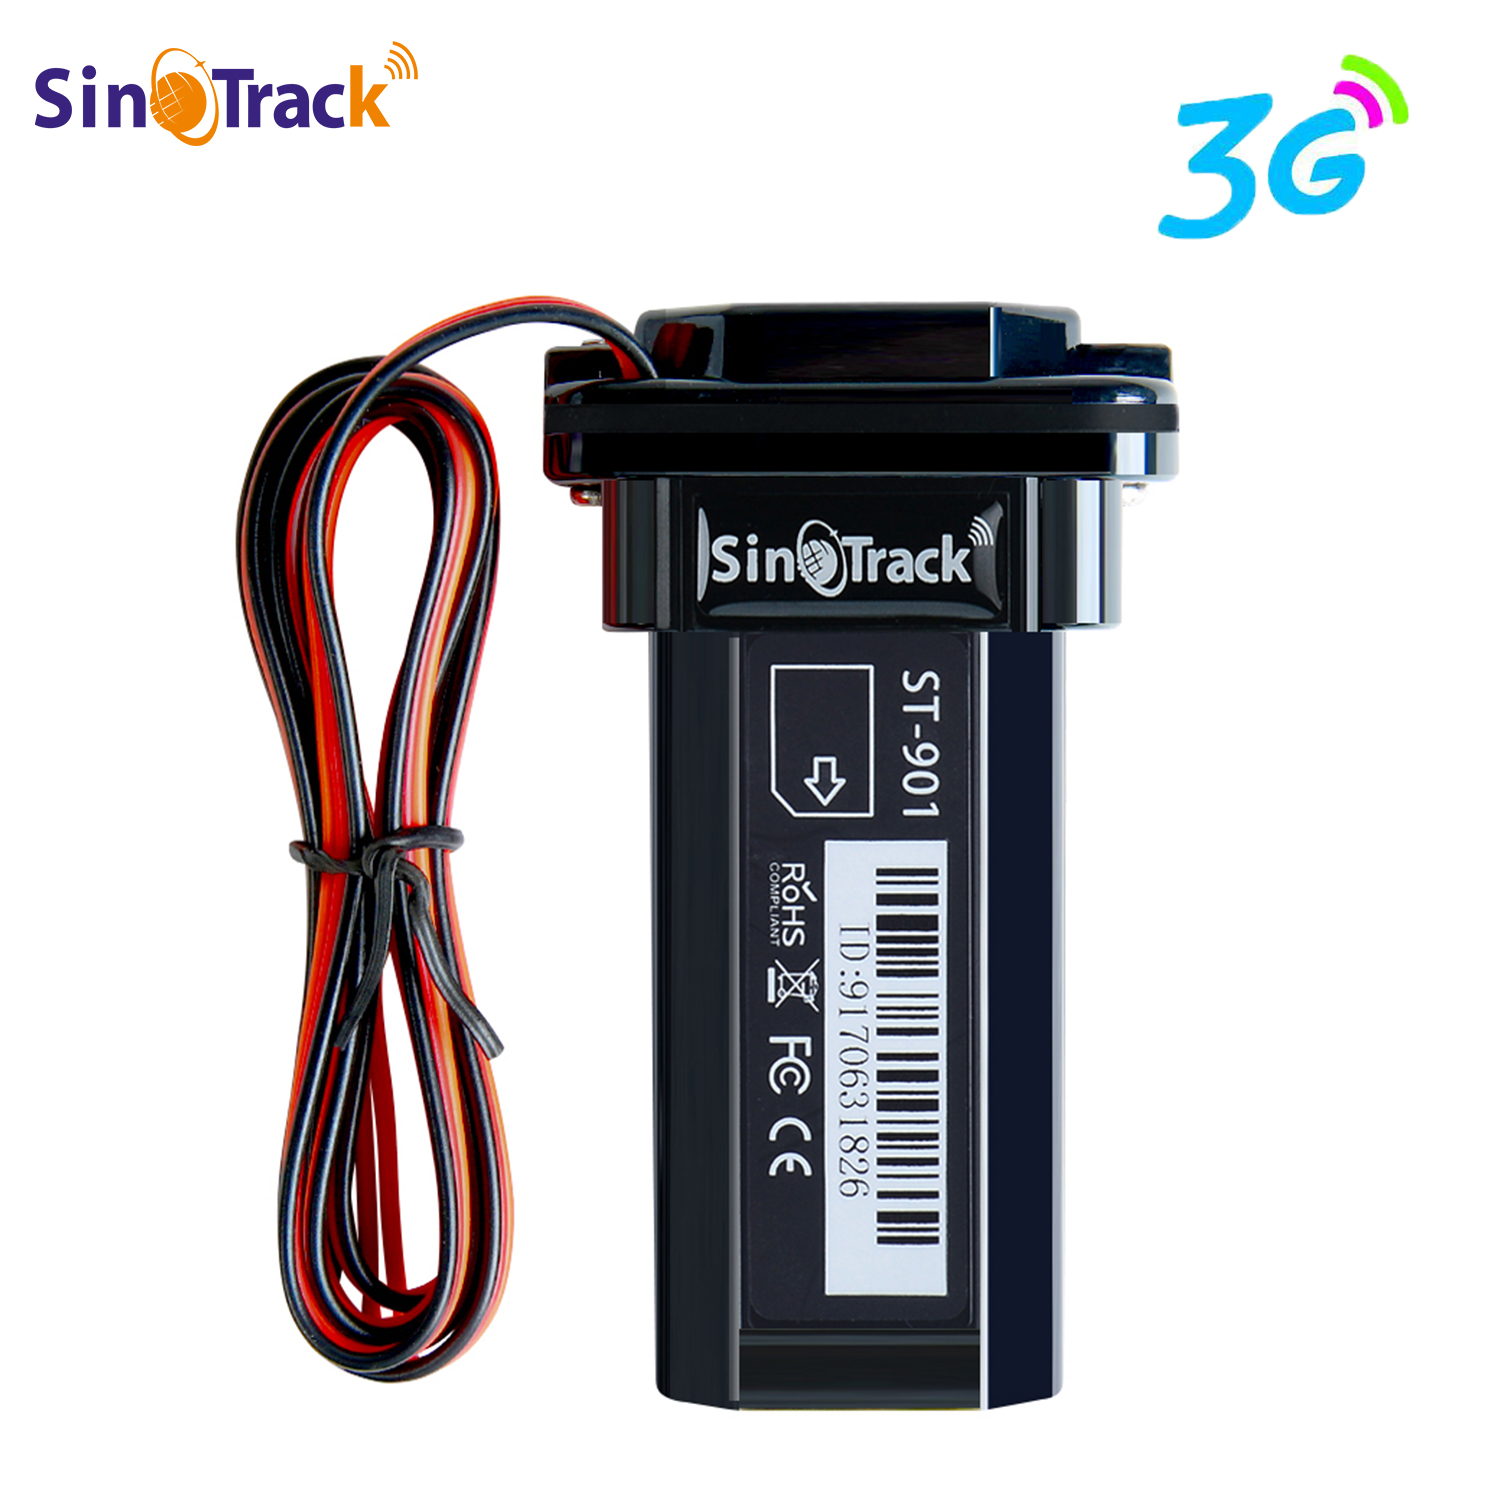 3G WCDMA Mini Tracker Waterproof Builtin Battery GPS ST-901 For Car Vehicle Gps Device Motorcycle With Online Tracking Software